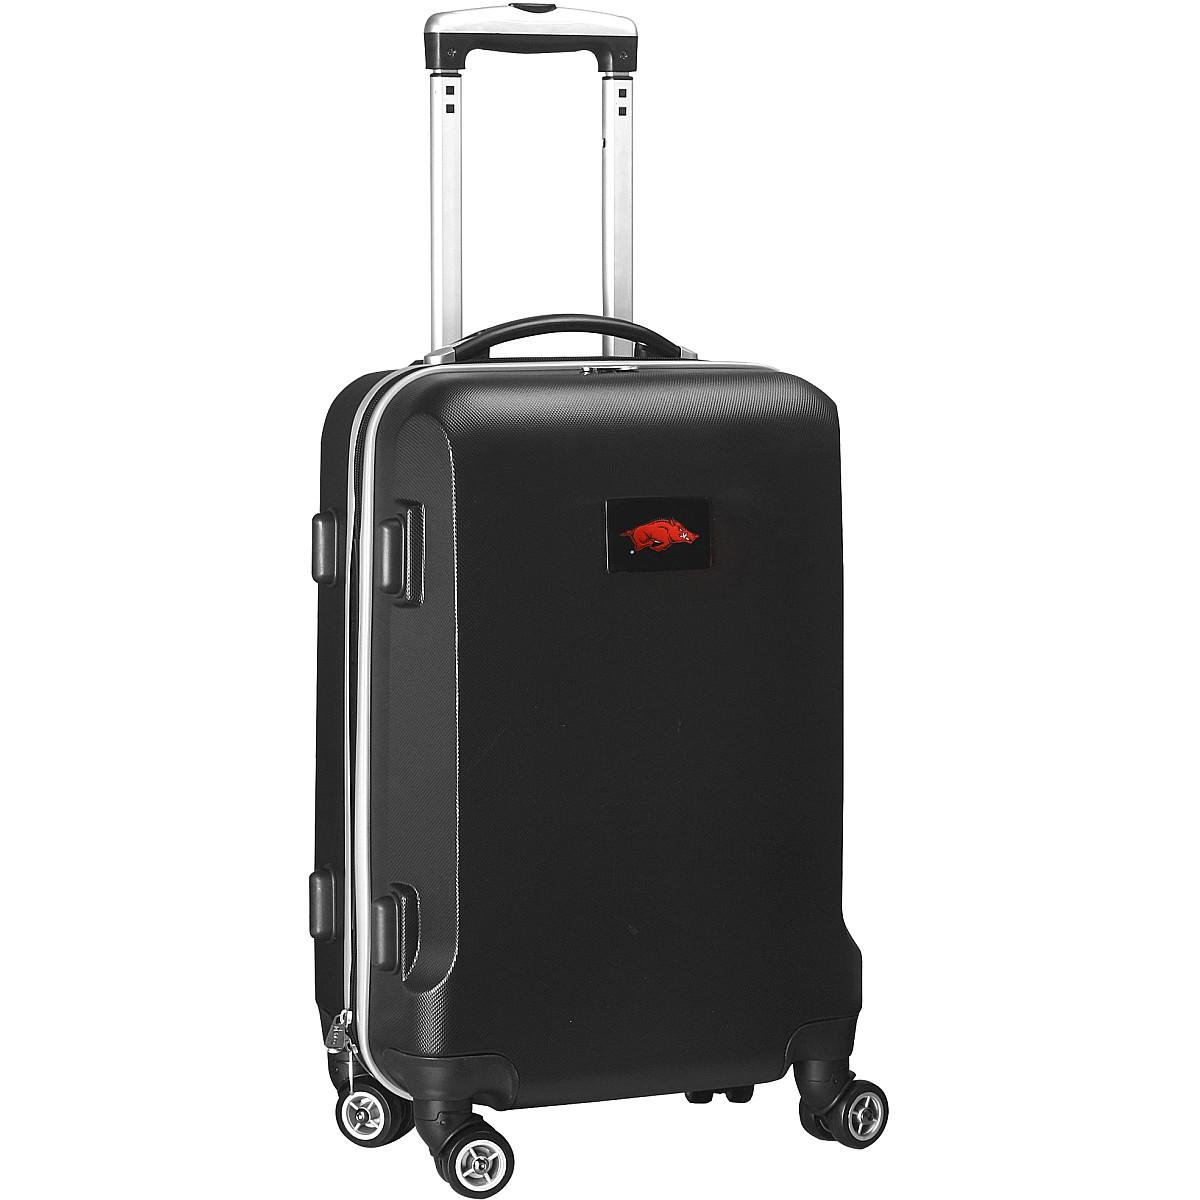 Denco NCAA Arkansas Razorbacks Carry-On Hardcase Luggage Spinner, Black